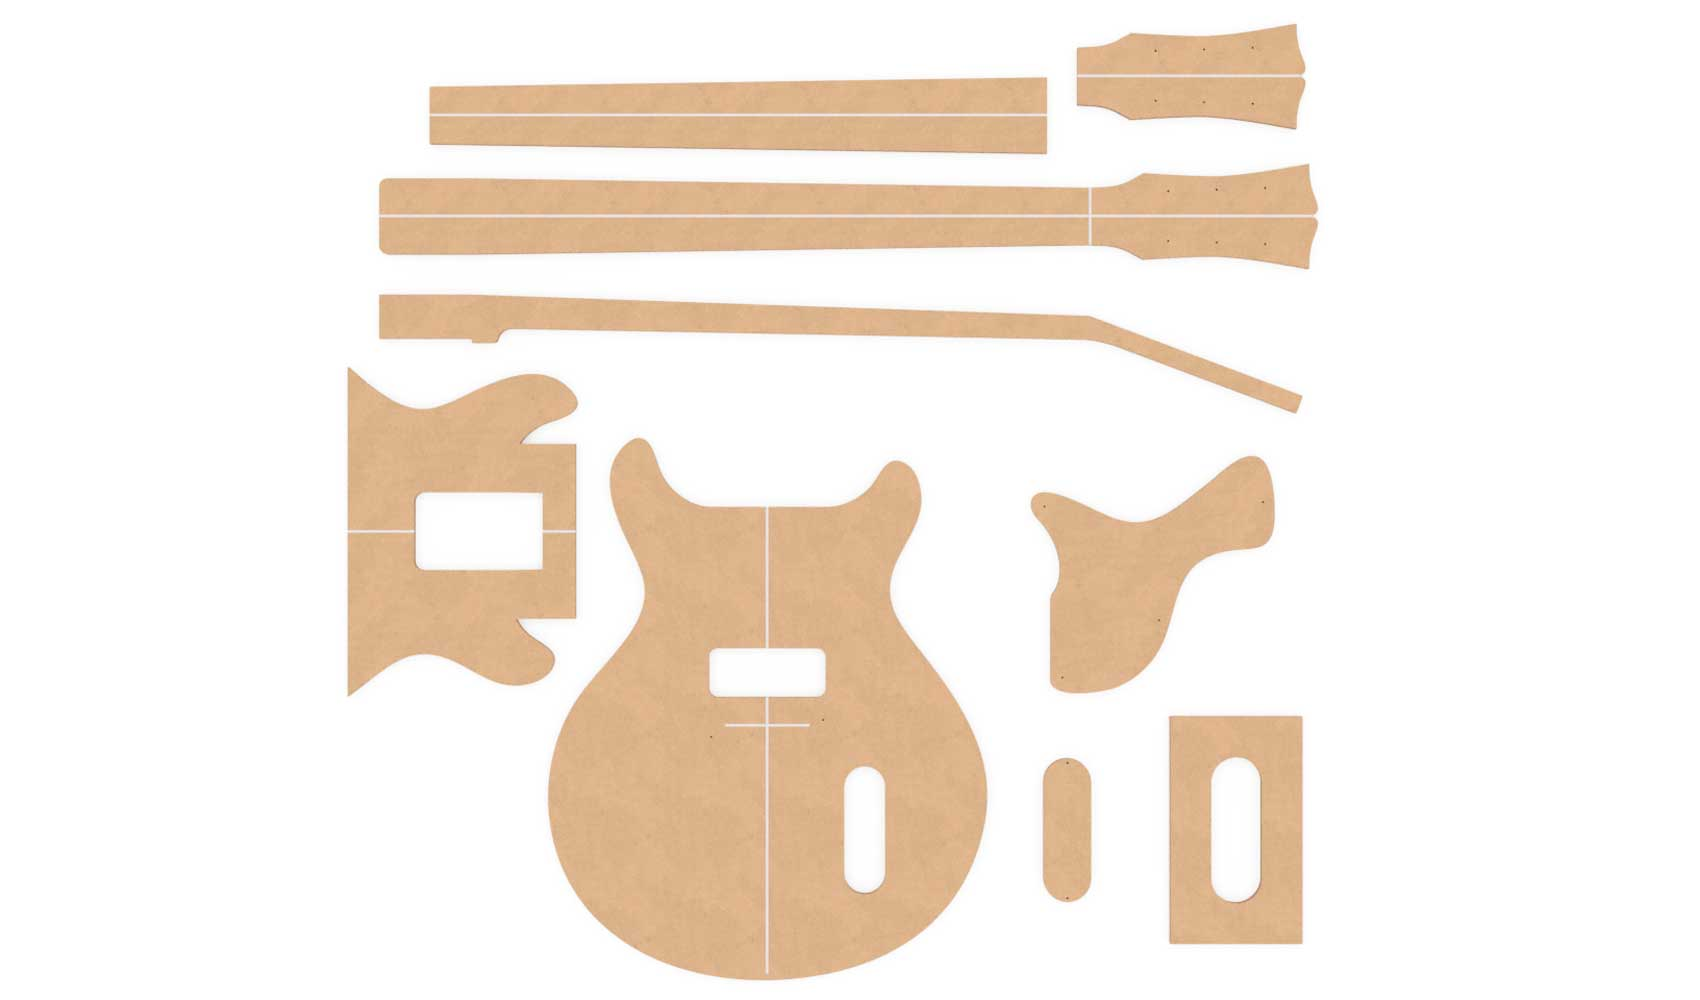 les paul top carving template - les paul top carving template choice image template